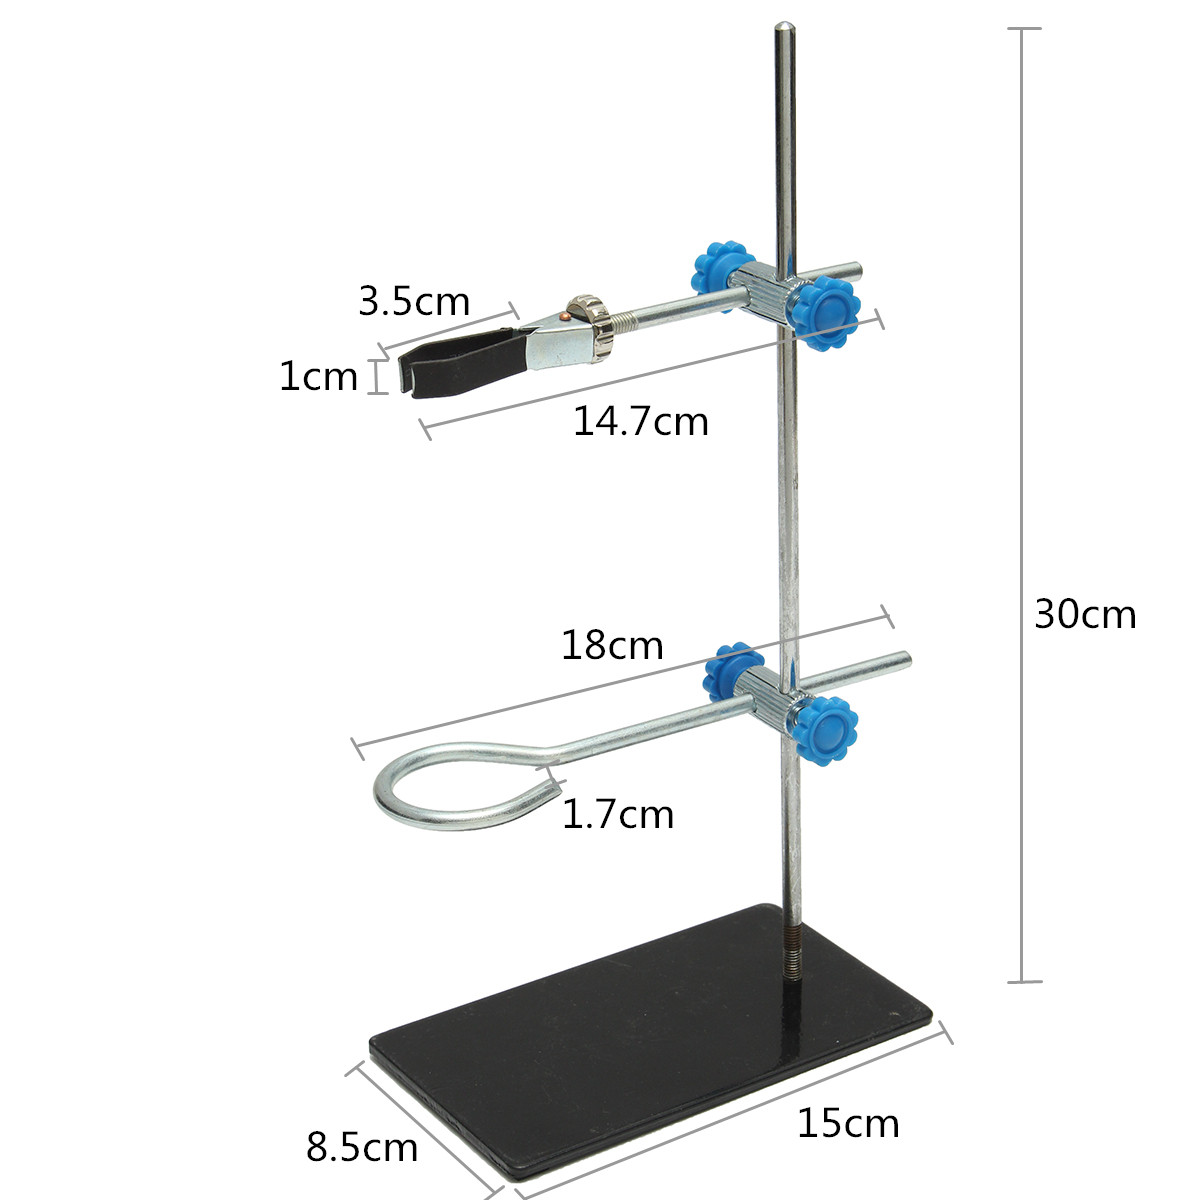 Kicute 1pcs 30cm High Retort StandIron Stand With Clamp Clip Laboratory Ring Stand Equipment Lab School Education Supplies